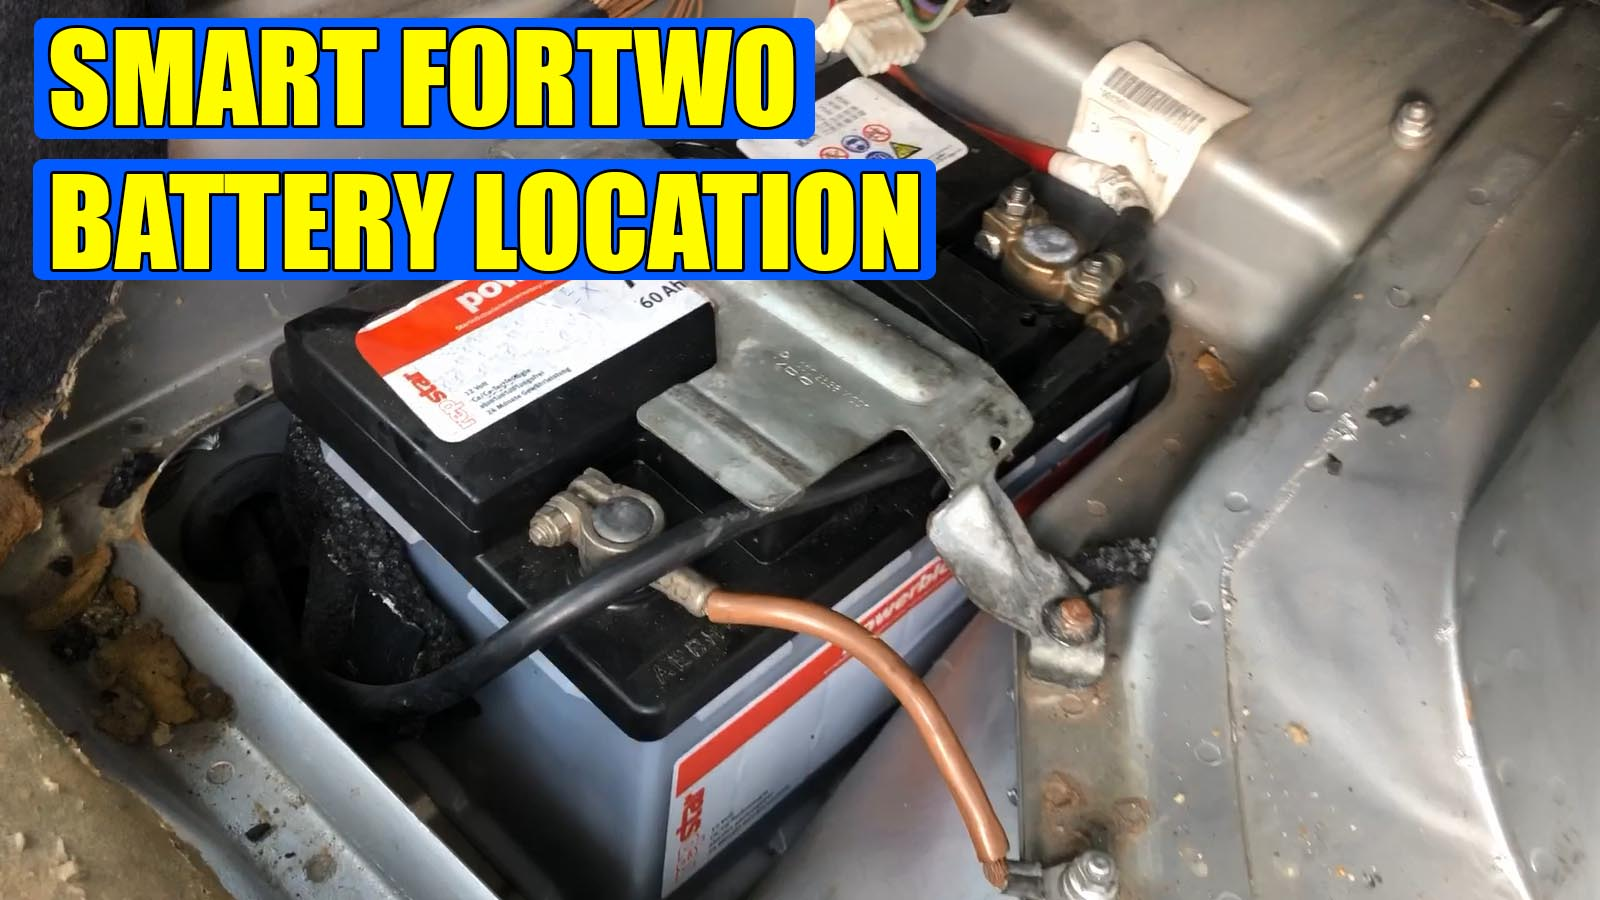 Smart Fortwo Battery Location Video